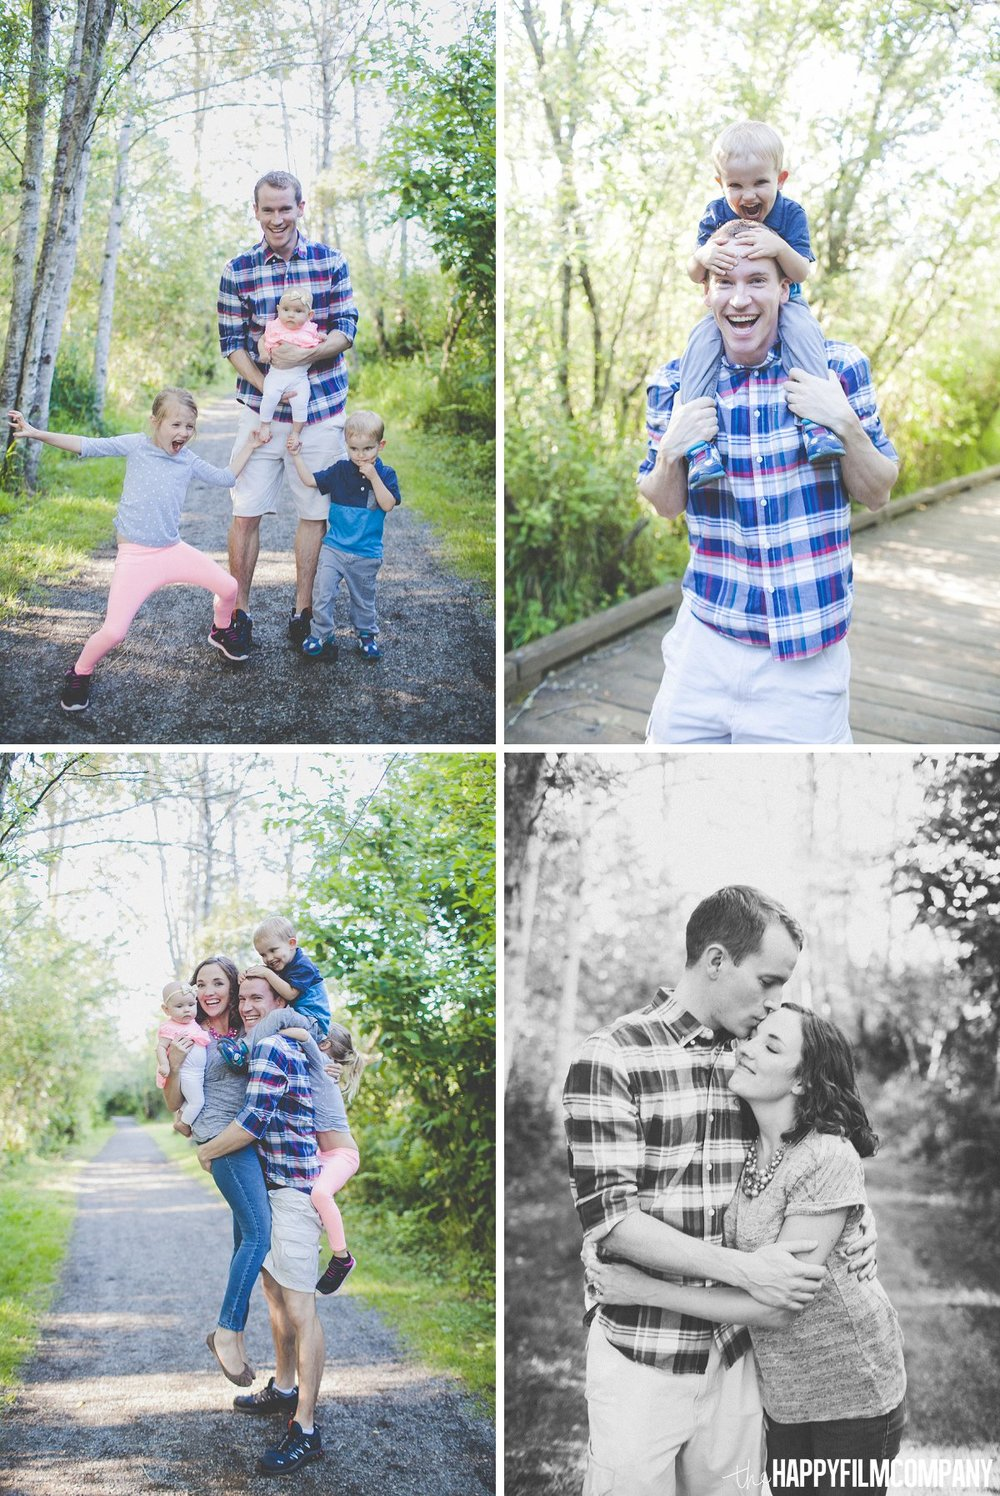 Seattle Father's Day mini shoot at Mercer slough nature park- the Happy Film Company - Seattle Family Photos